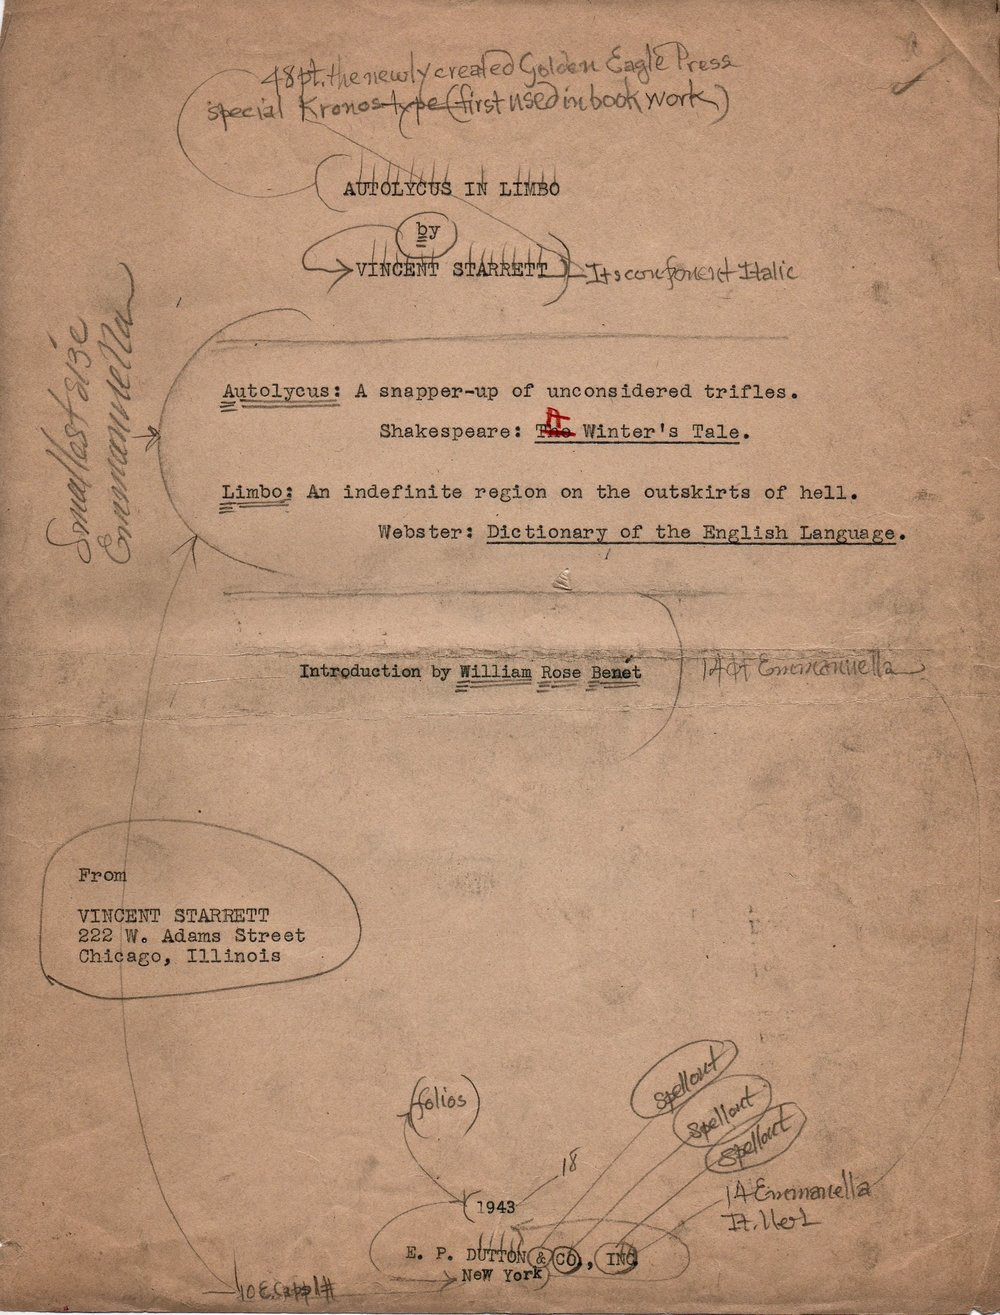 The manuscript page for the title page of  Autolycus in Limbo,  published in 1943 by E .P. Dutton & Co. The published title page is at the bottom of this post.